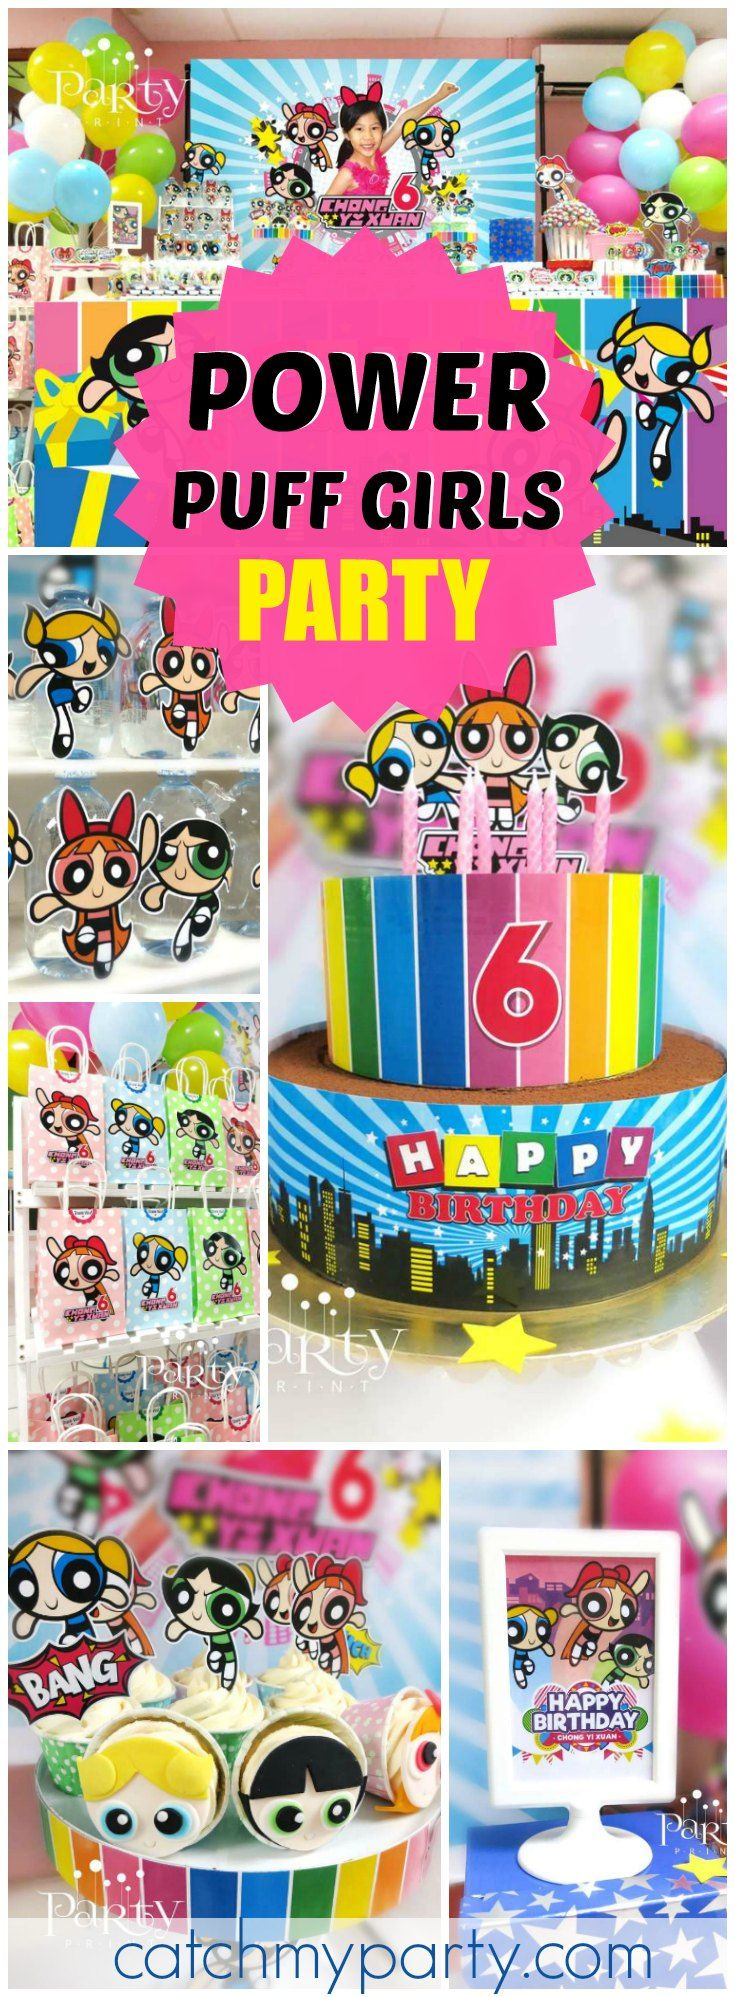 Check out this colorful Power Puff Girls birthday party! See more party ideas at CatchMyParty.com!